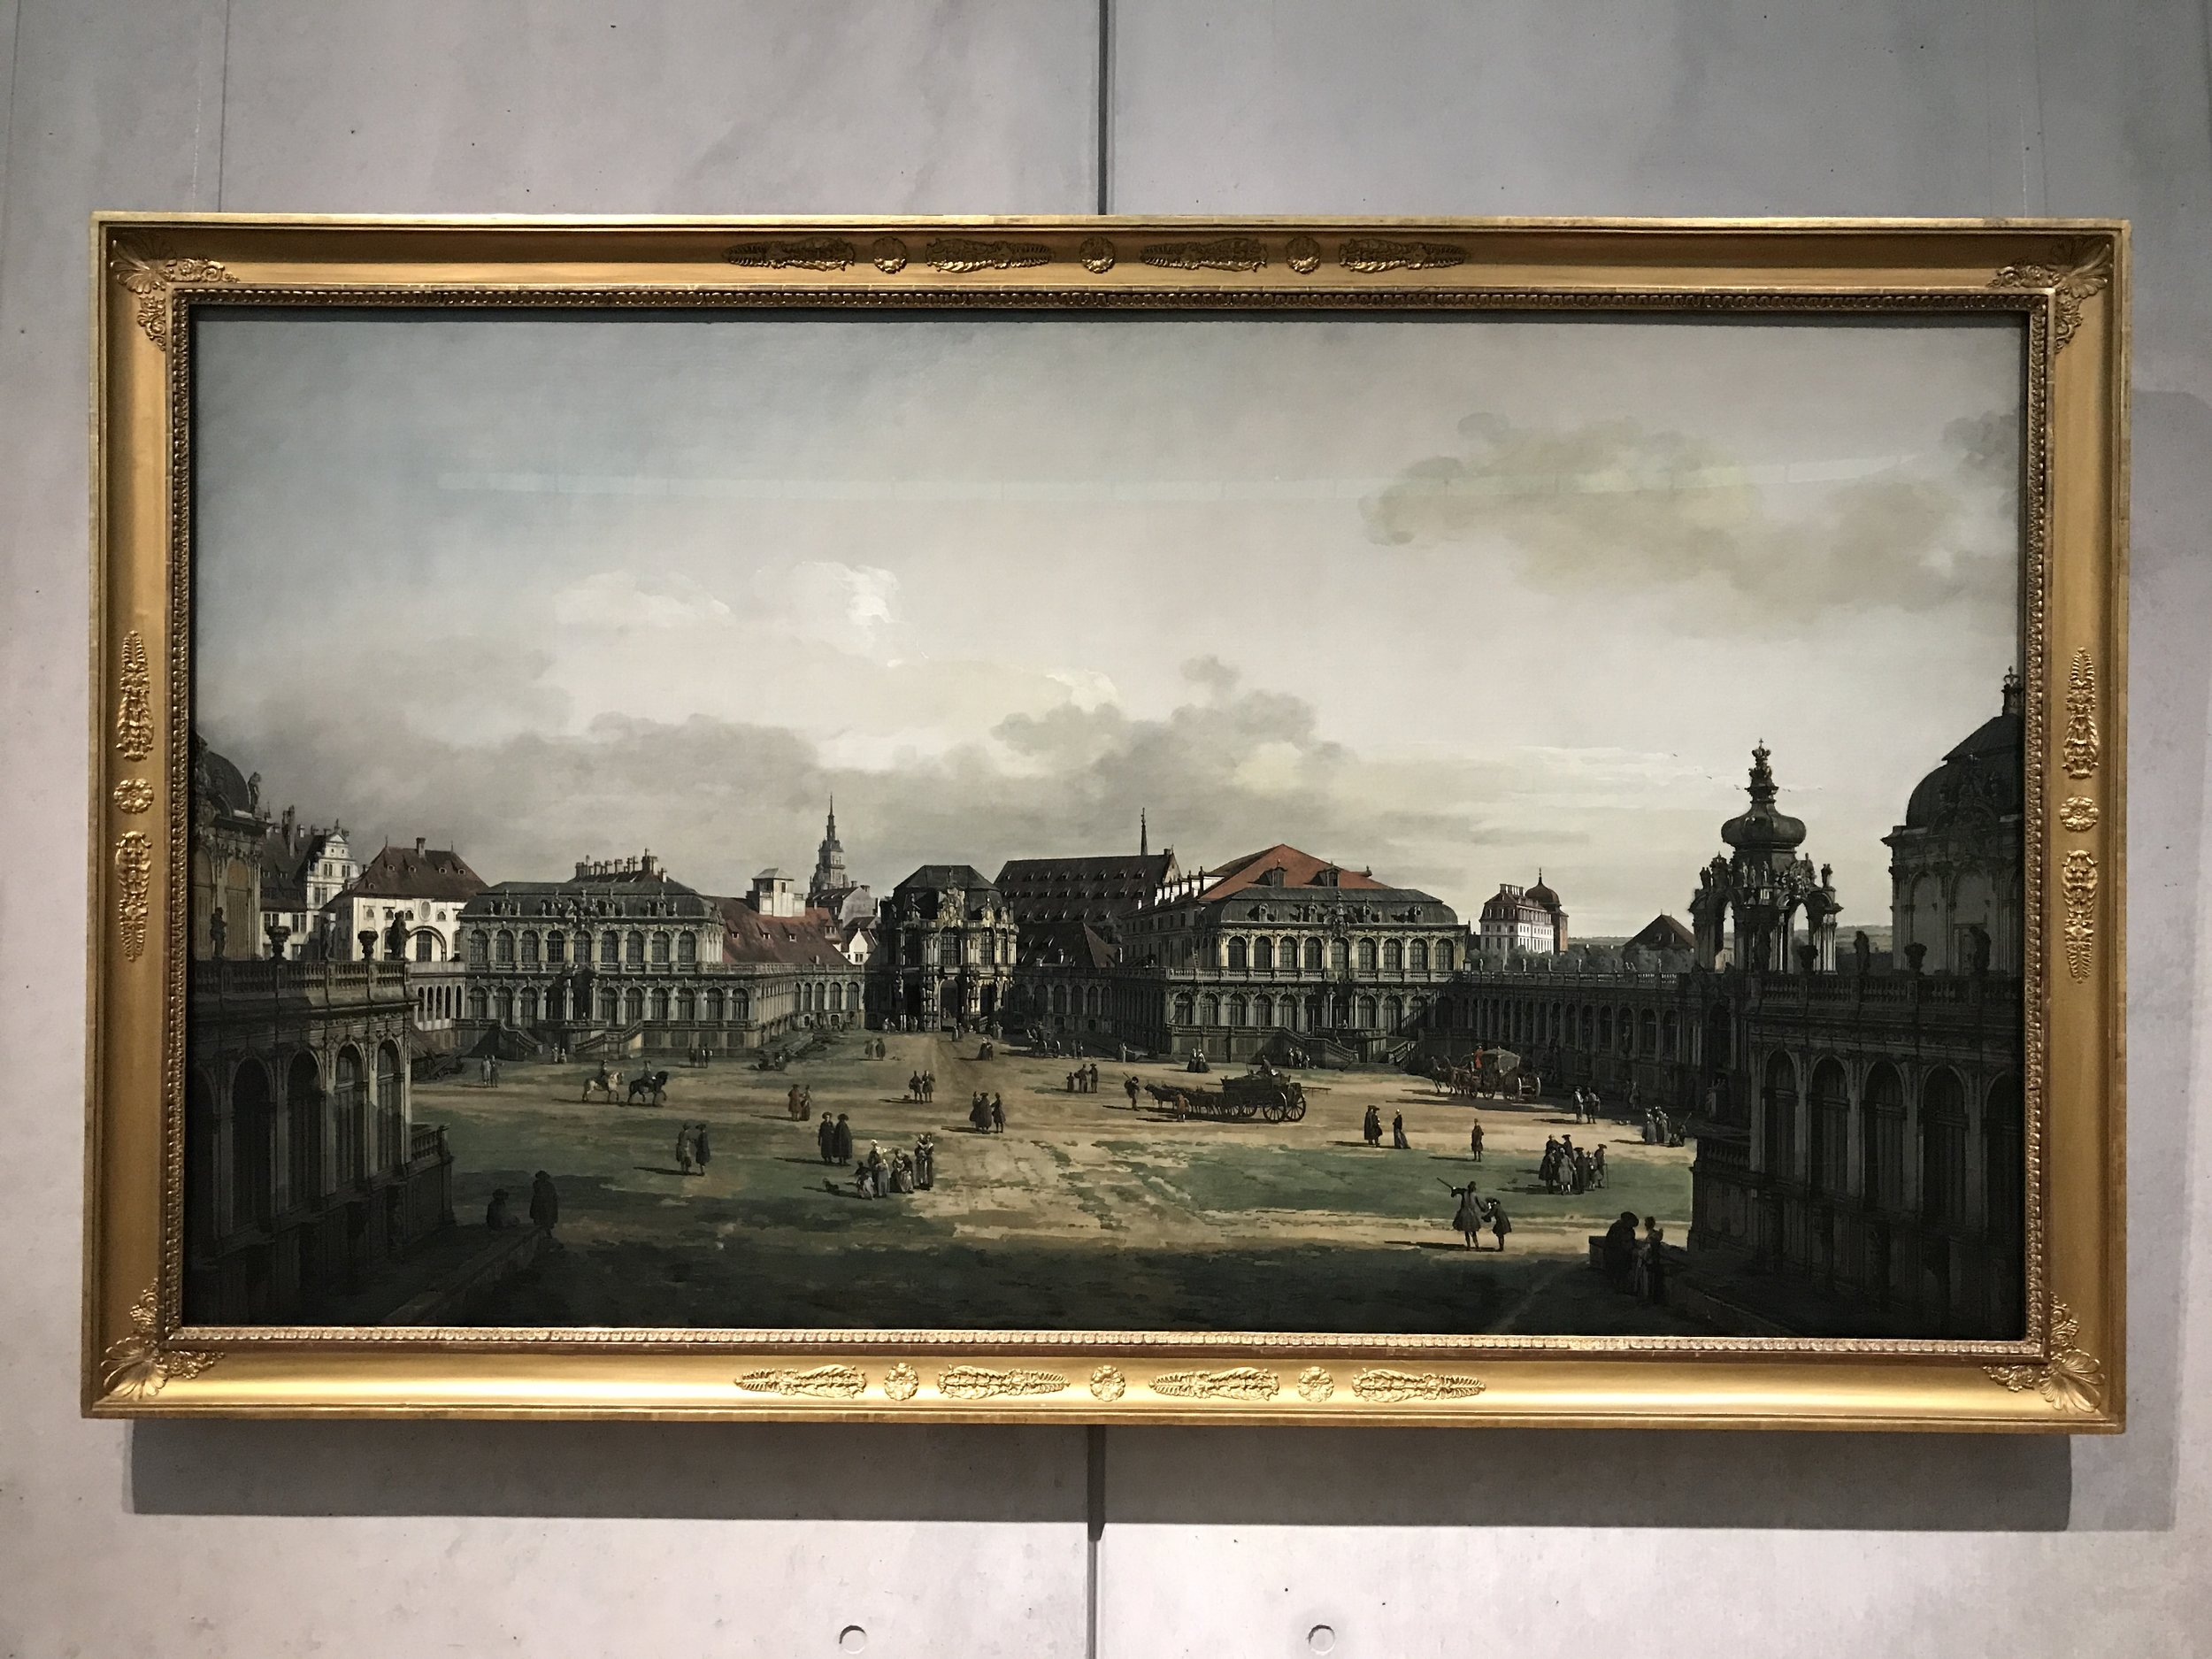 The Zwinger Courtyard in Dresden - Canaletto